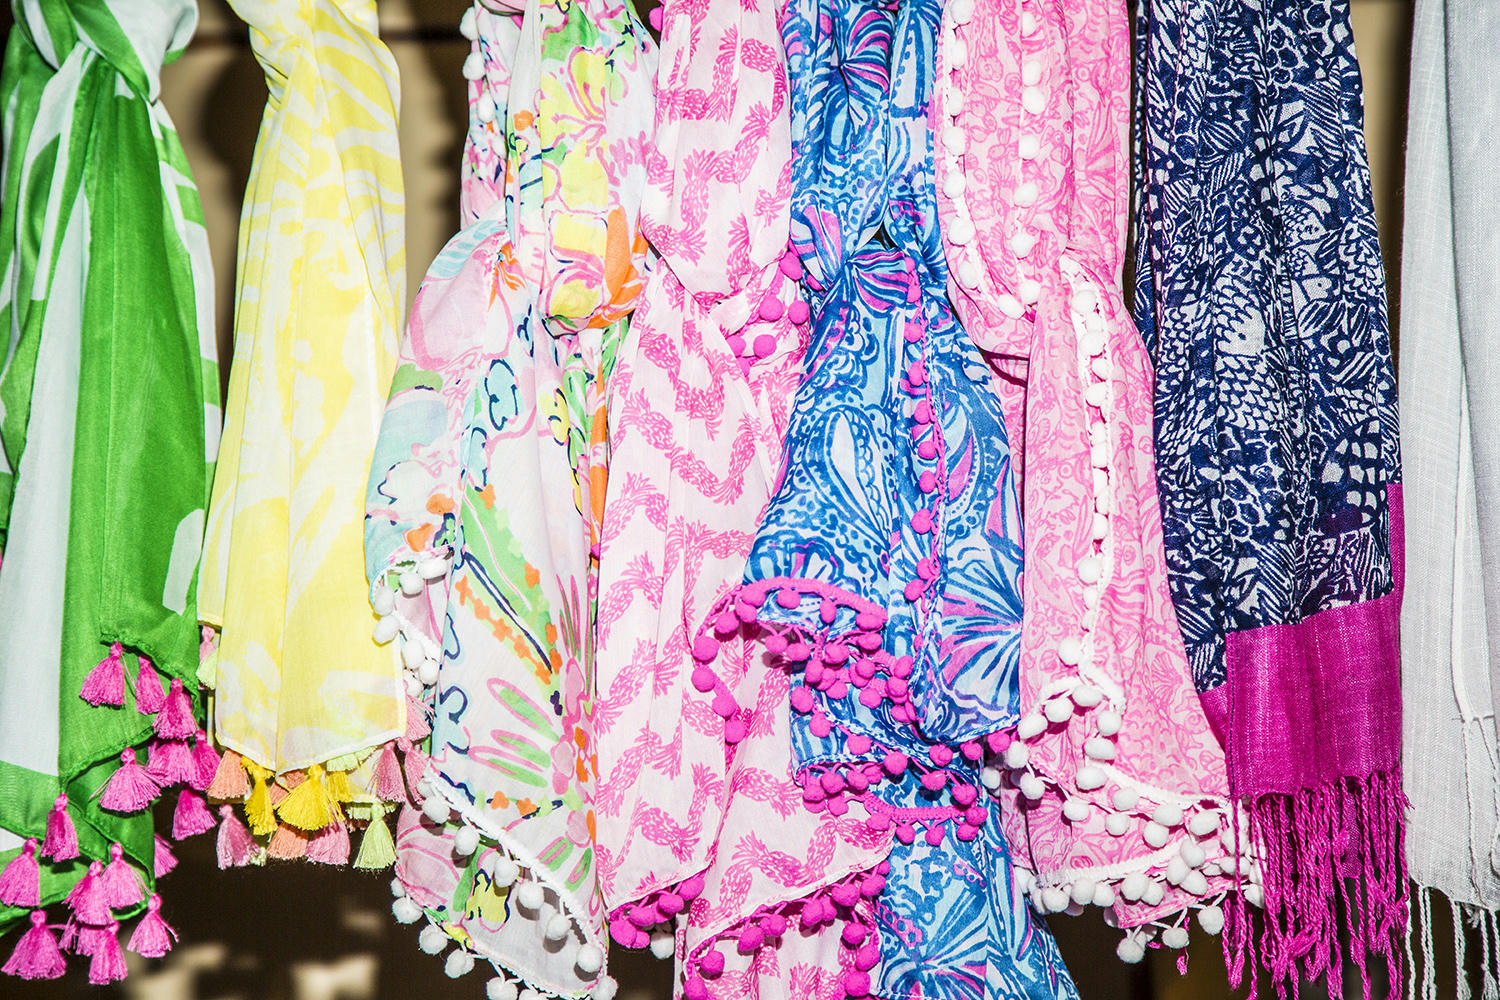 Target is partnering with Lilly Pulitzer on Spring Collection